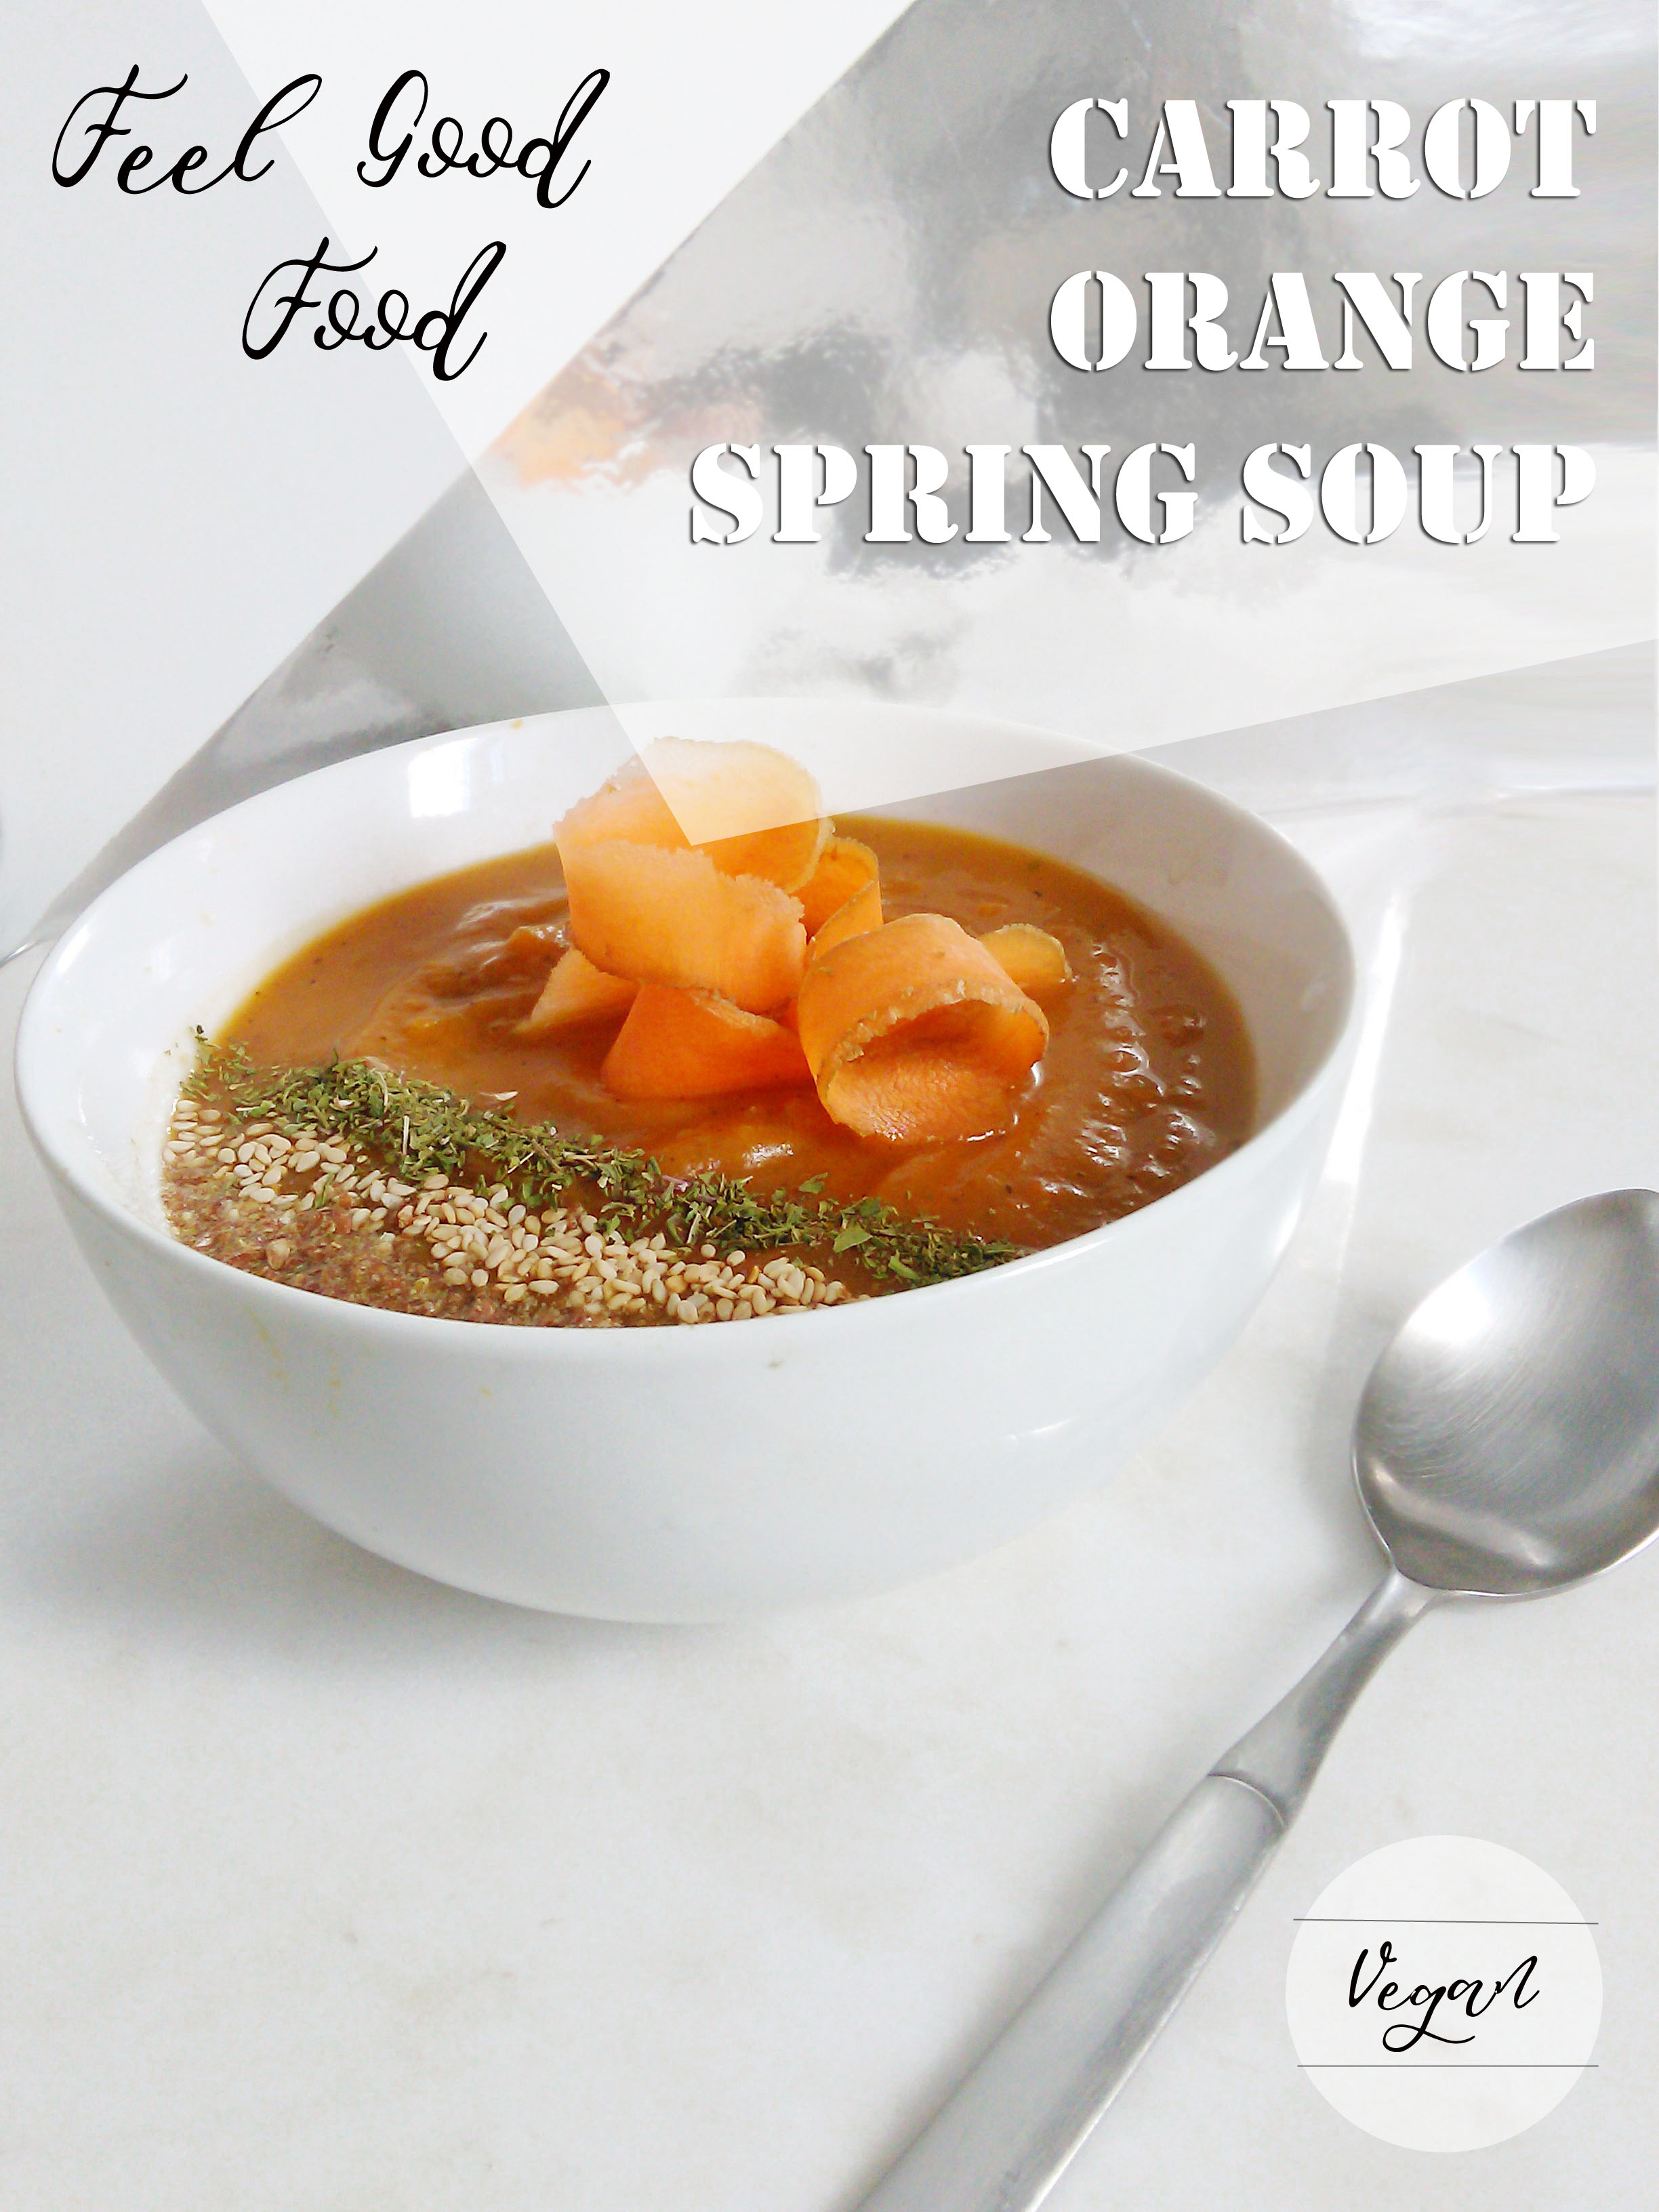 DELICIOUS CARROT ORANGE SPRING SOUP